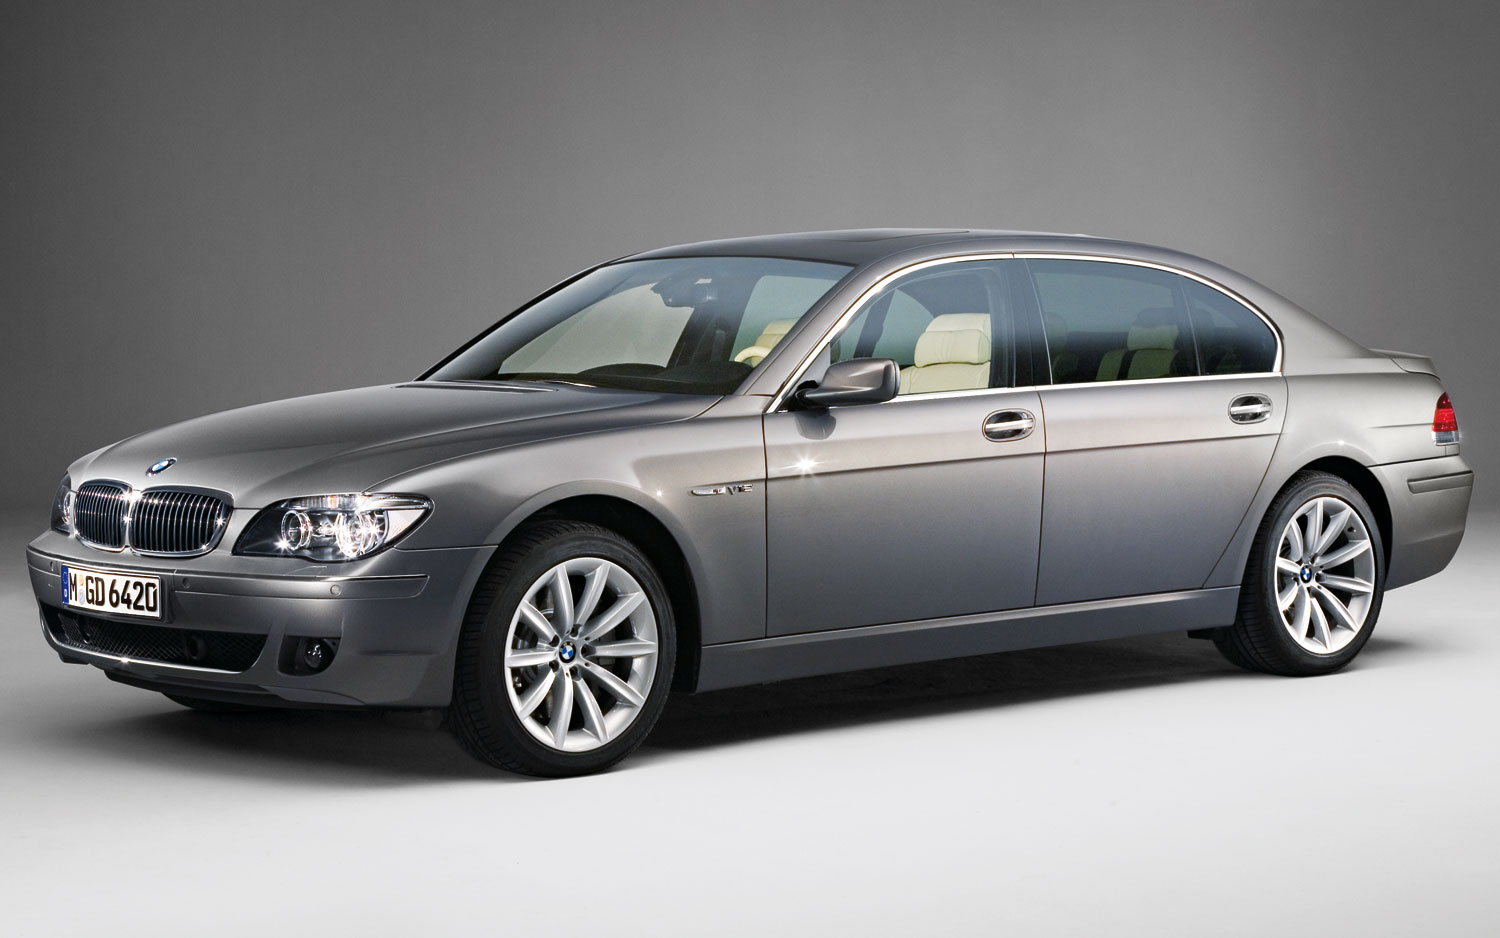 Recalls: Faulty 2005-2007 BMW 7 Series Soft-Close Doors Could Lead ...